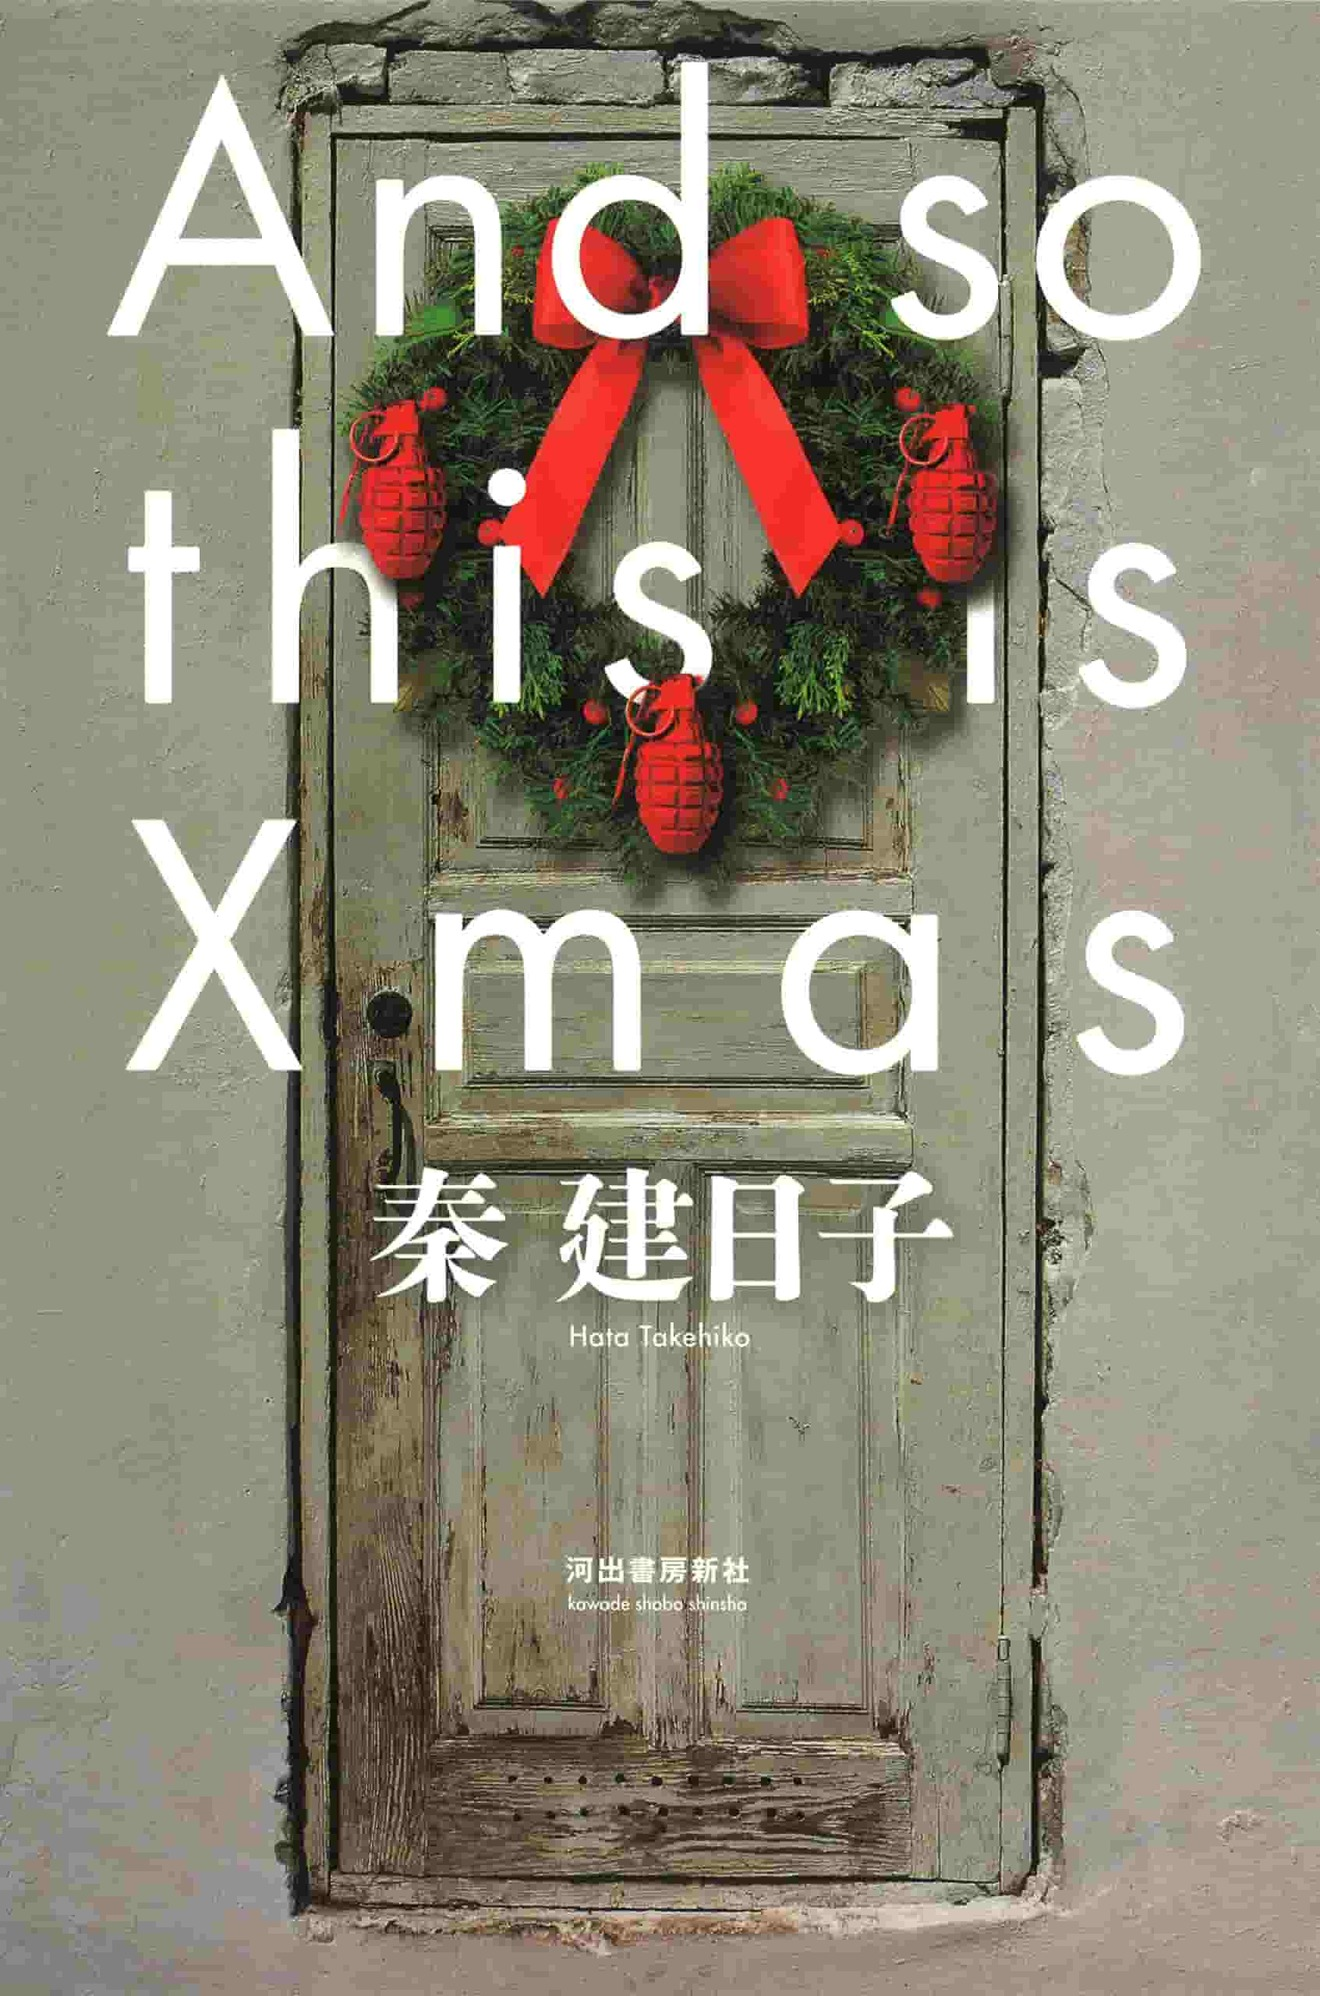 『And so this is Xmas』は原作も絶対に読んでほしい!映画作品の考察も